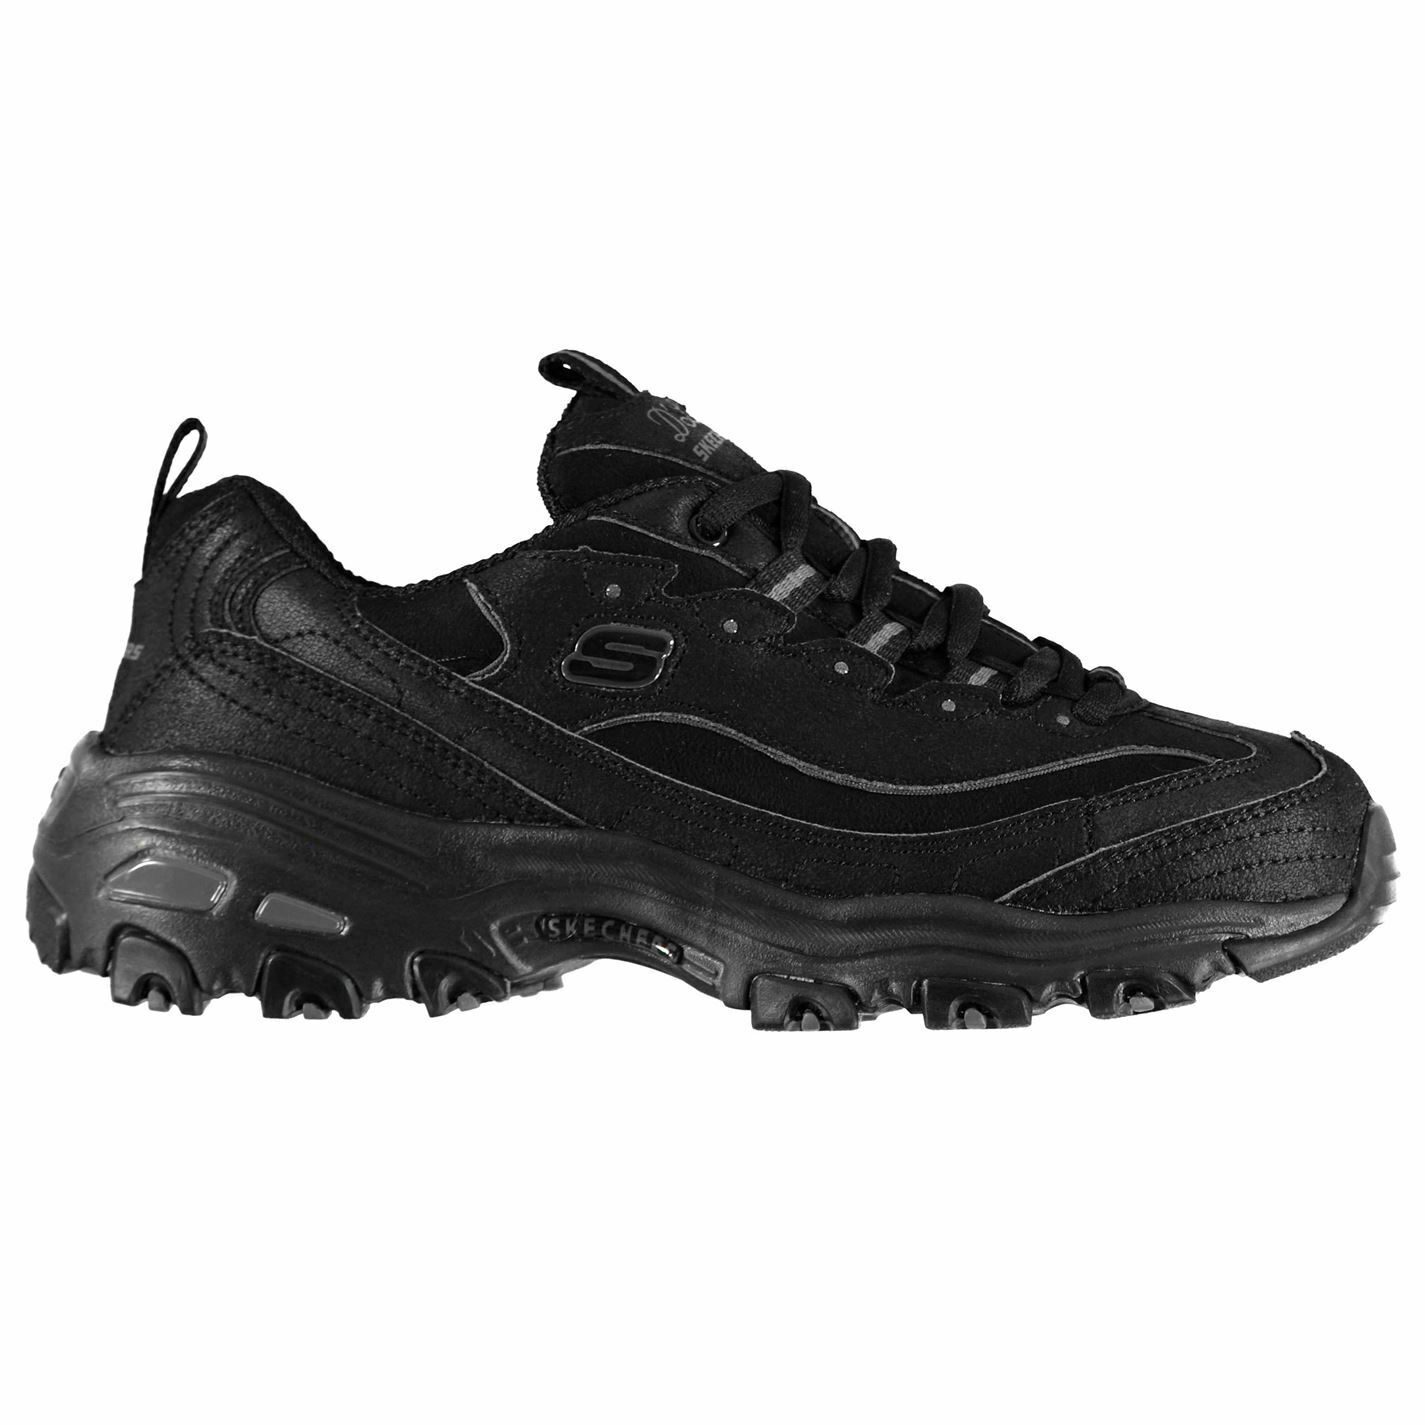 Womens Skechers D Lites Trainers Runners Lace  Up Textured New  welcome to order